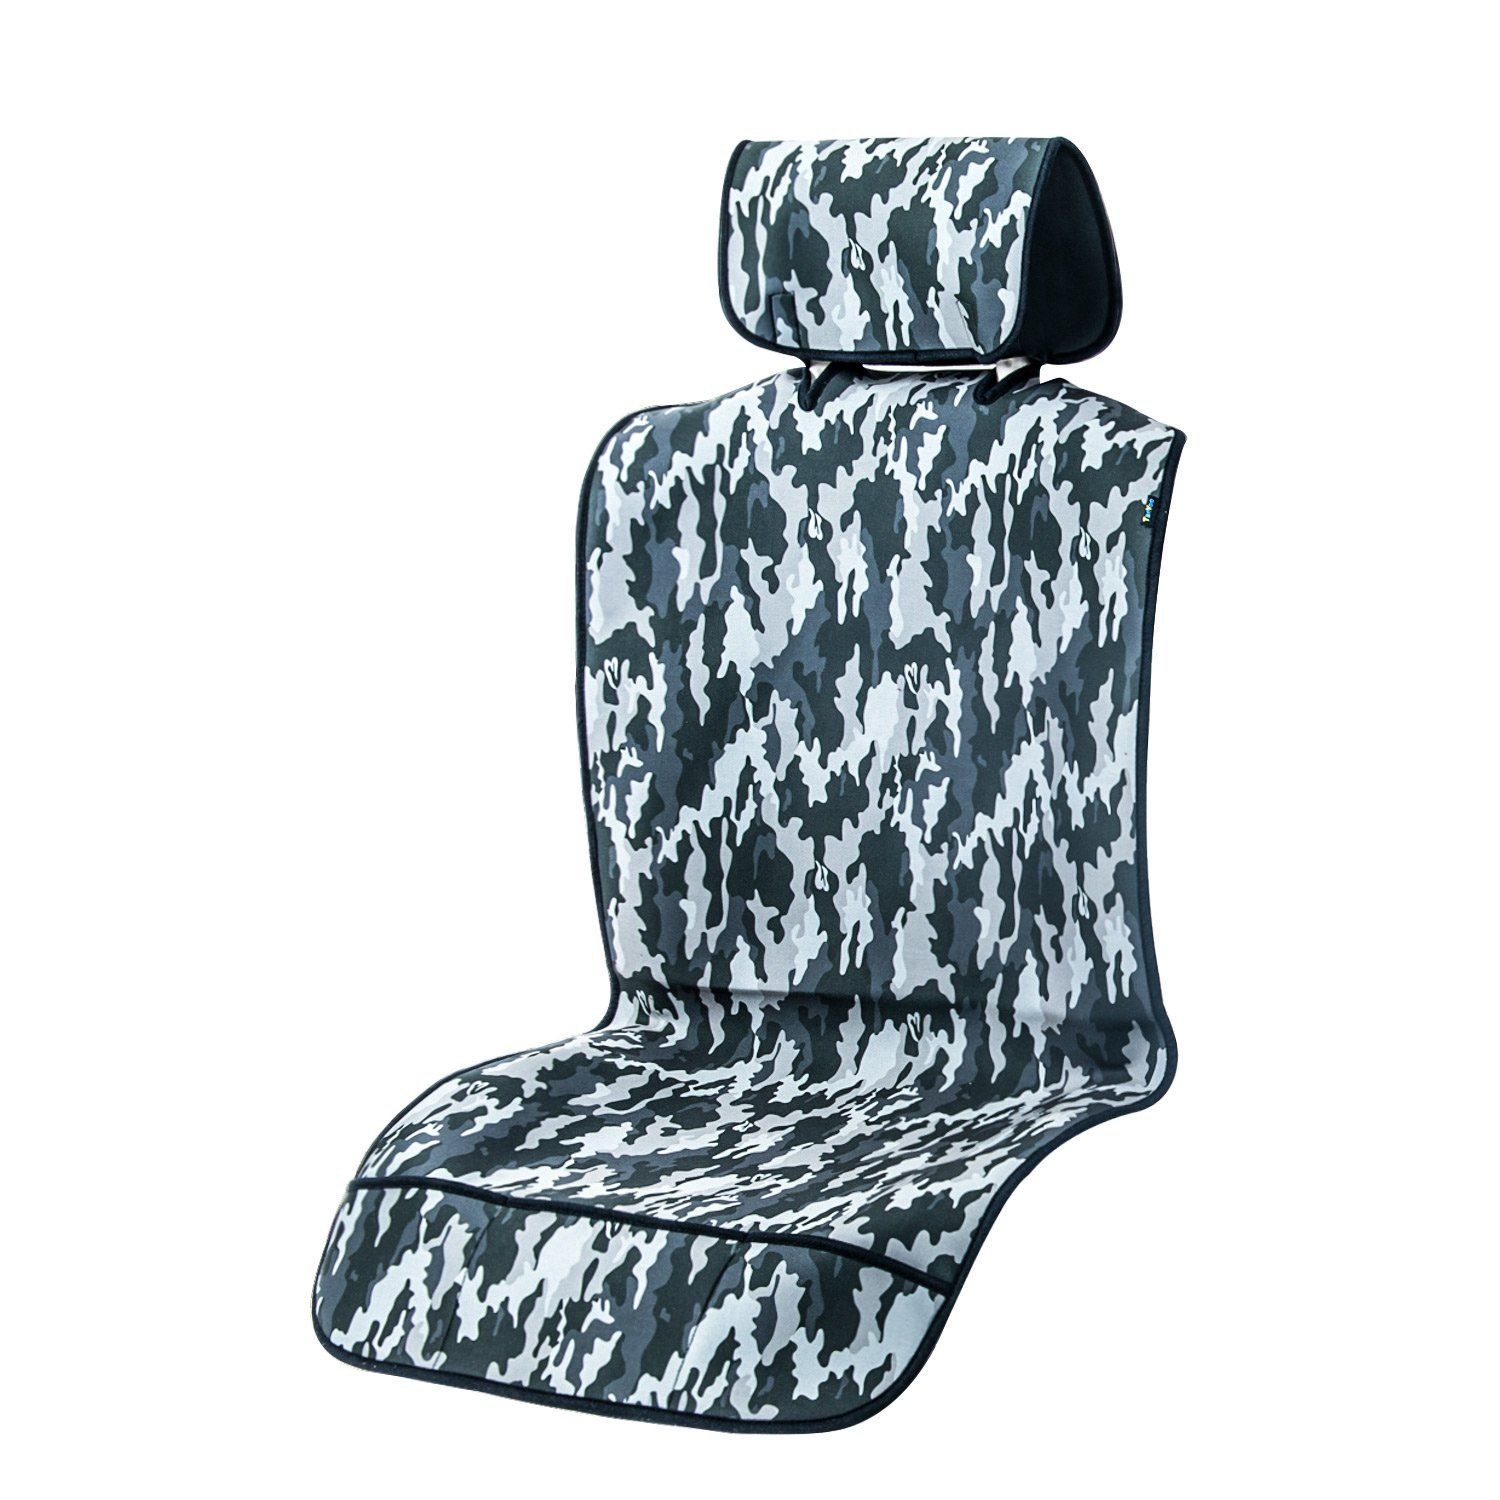 TanYoo Waterproof Car Seat Covers, Universal Seat Protector for Gym ...